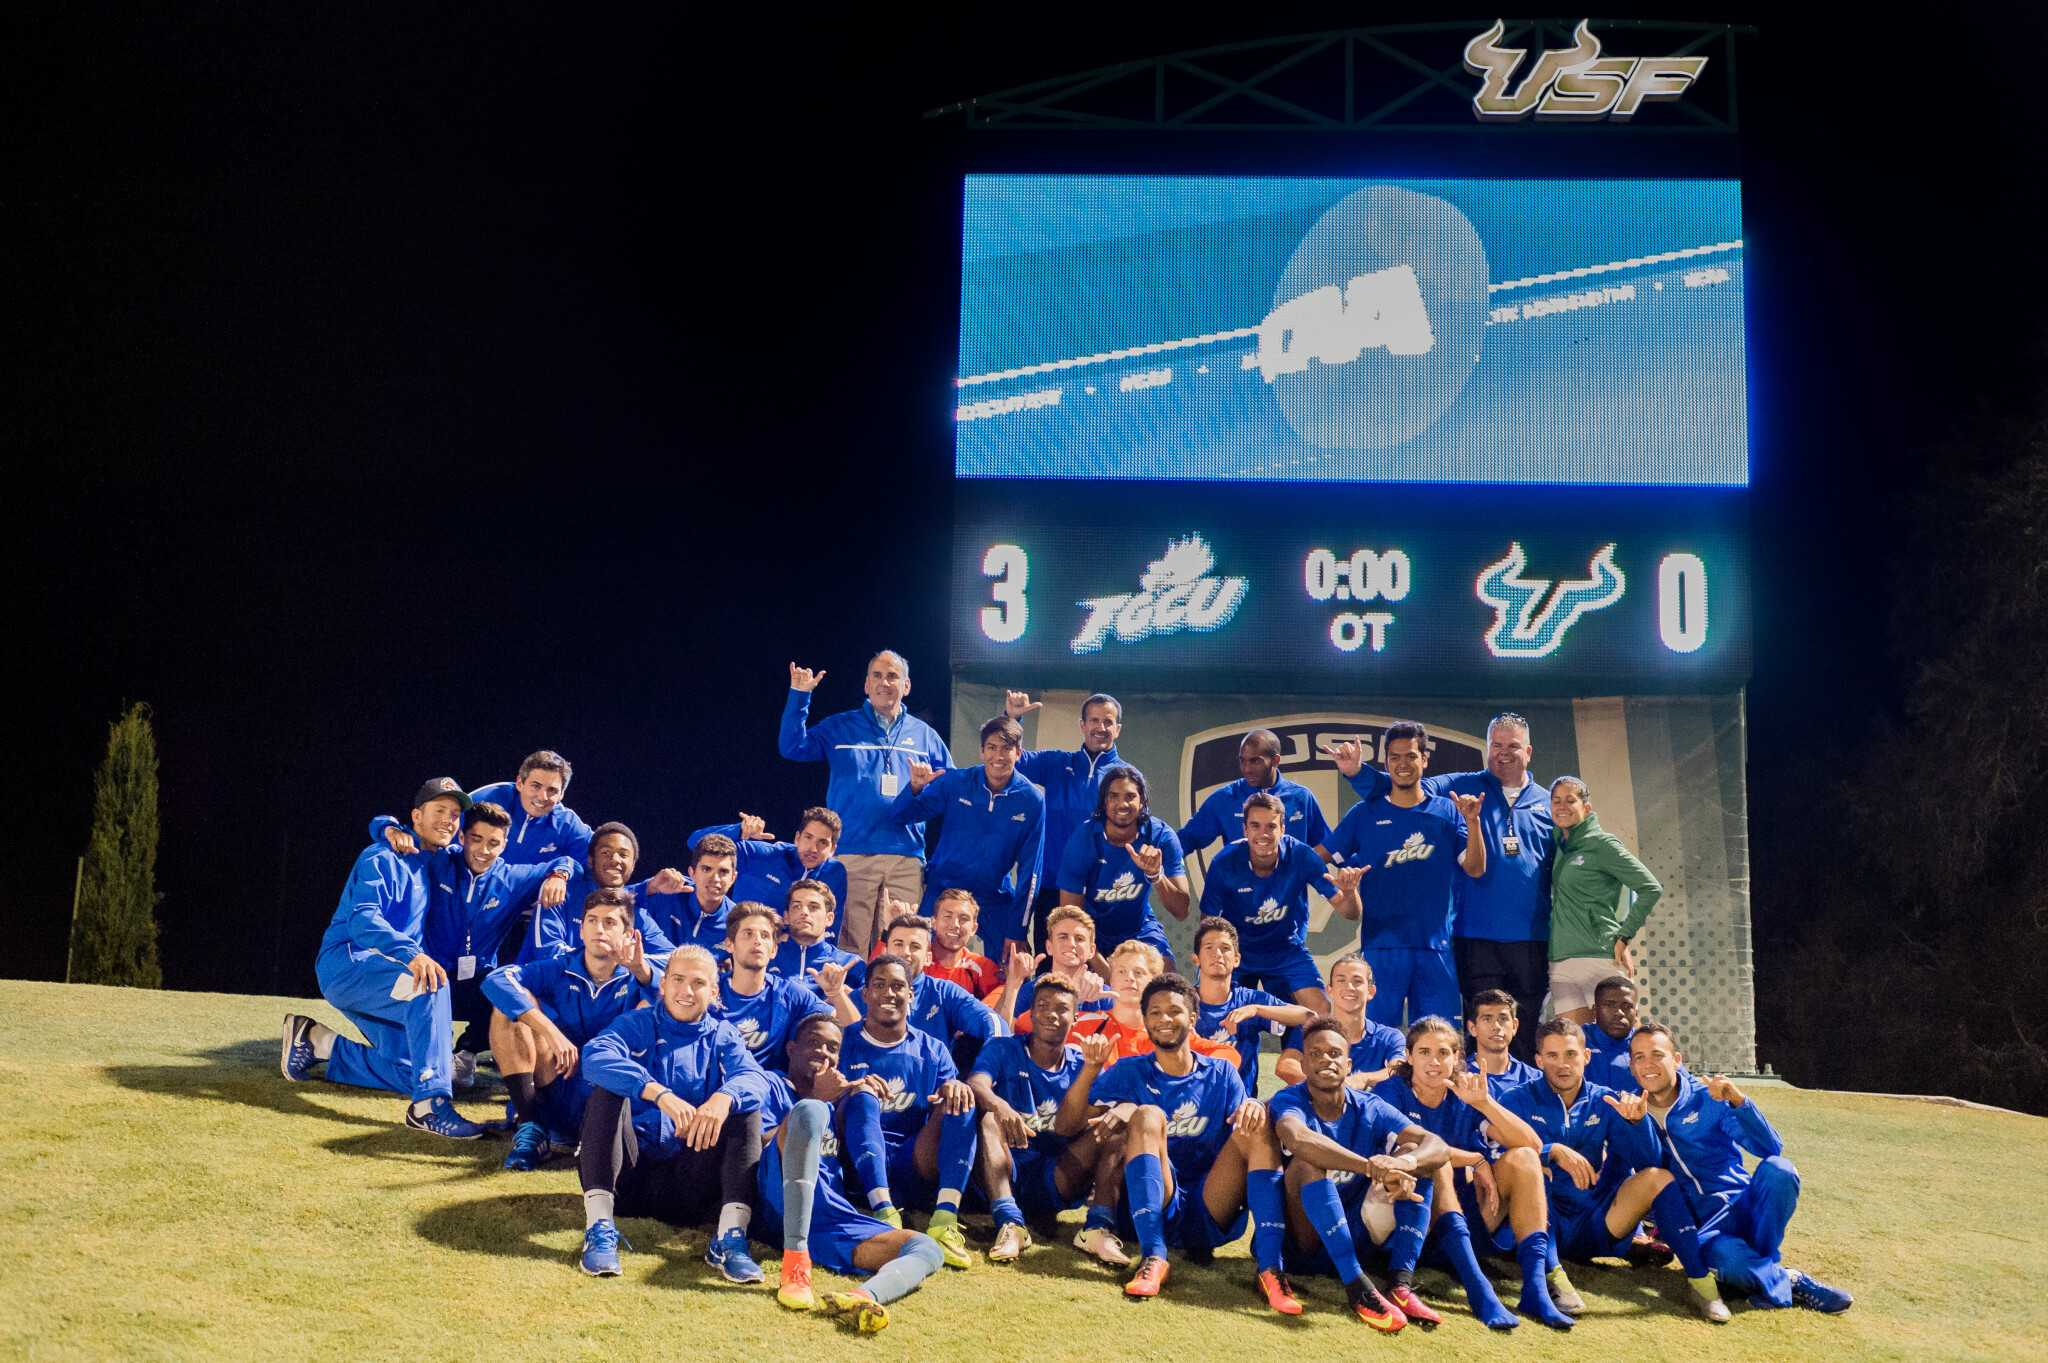 FGCU men's soccer coaching staff selected as Southeast Region Staff of the Year